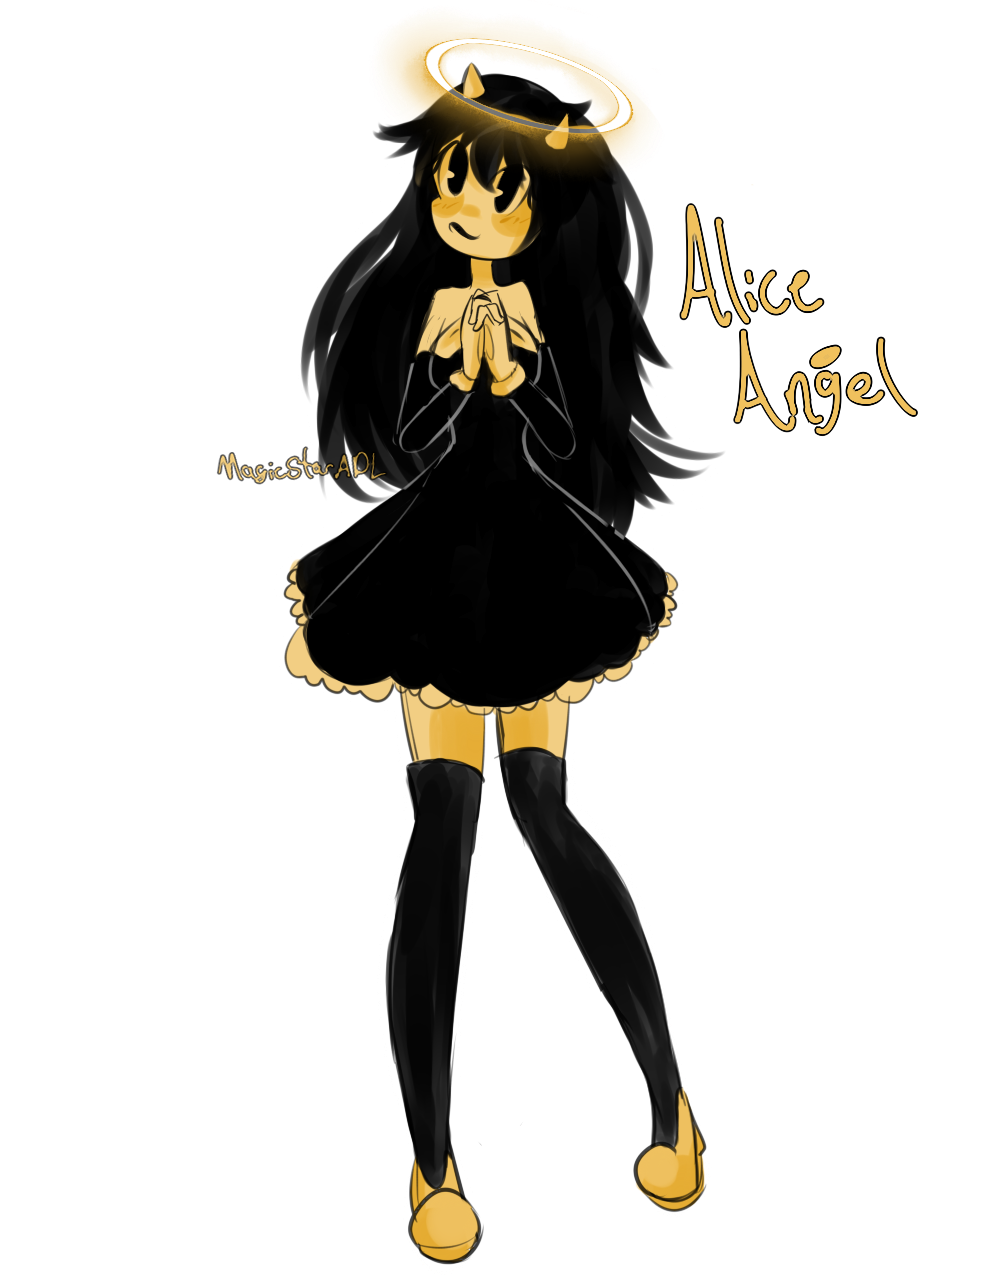 Alice angel images 11